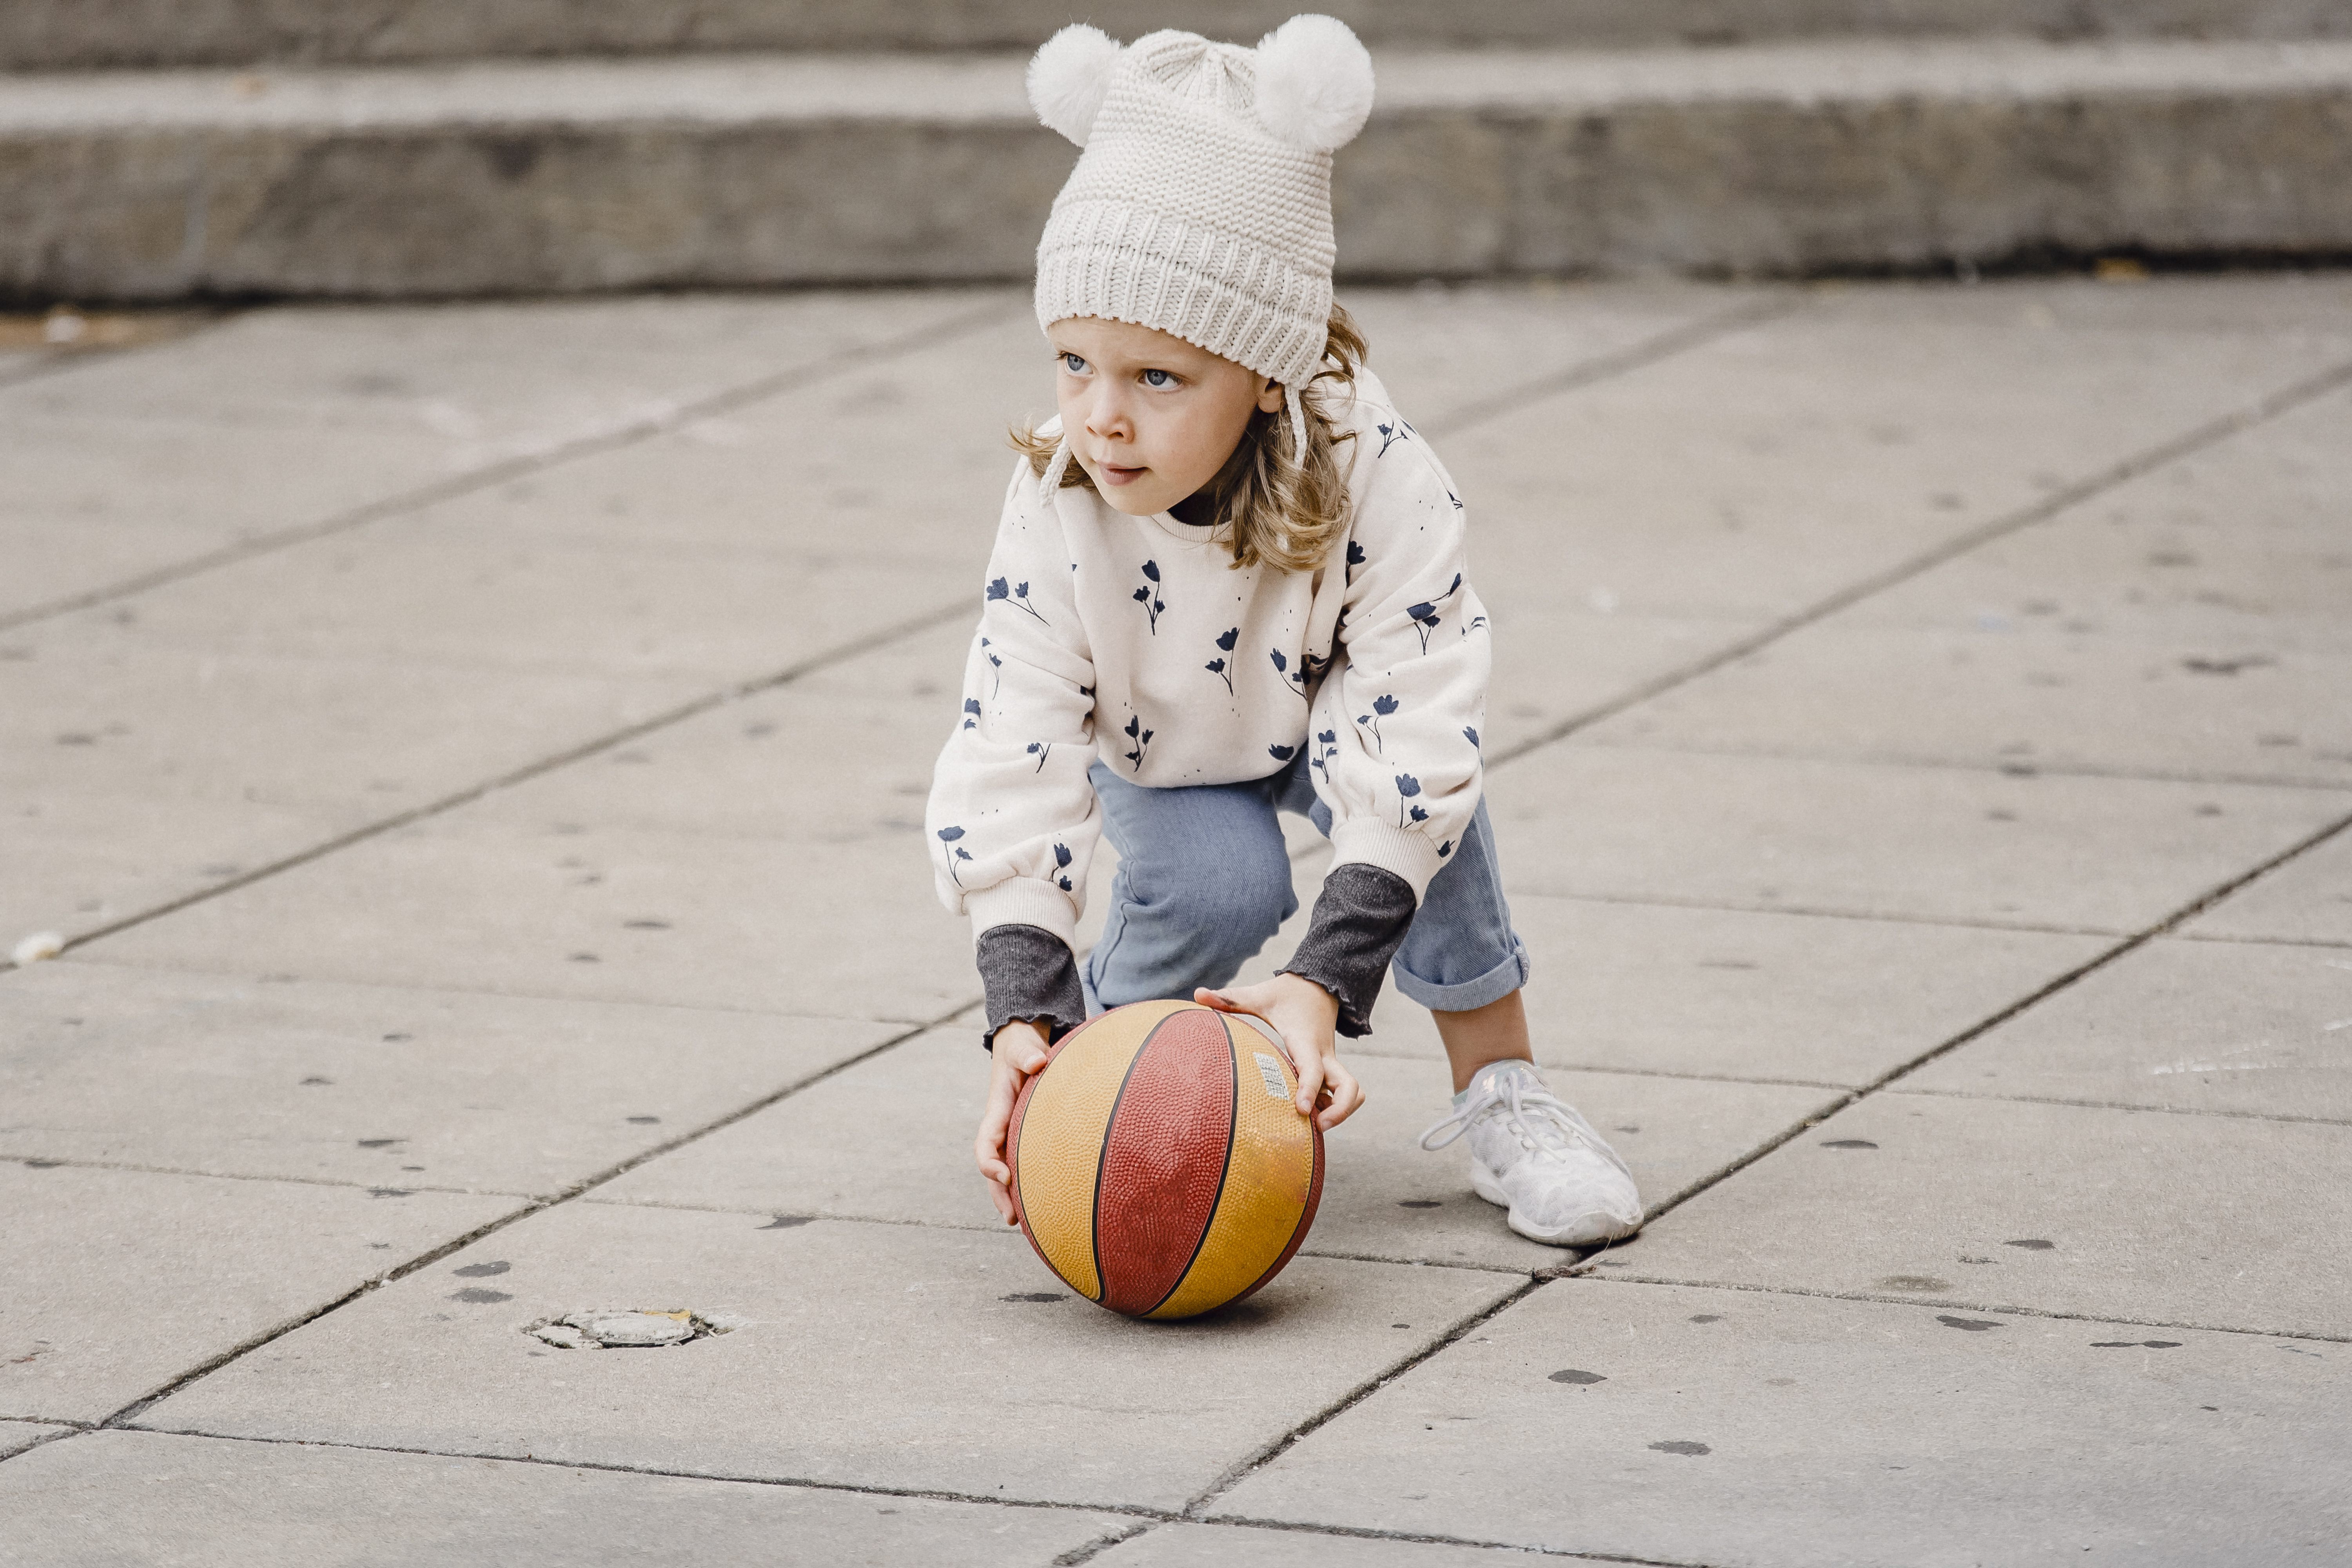 girl playing with ball on street